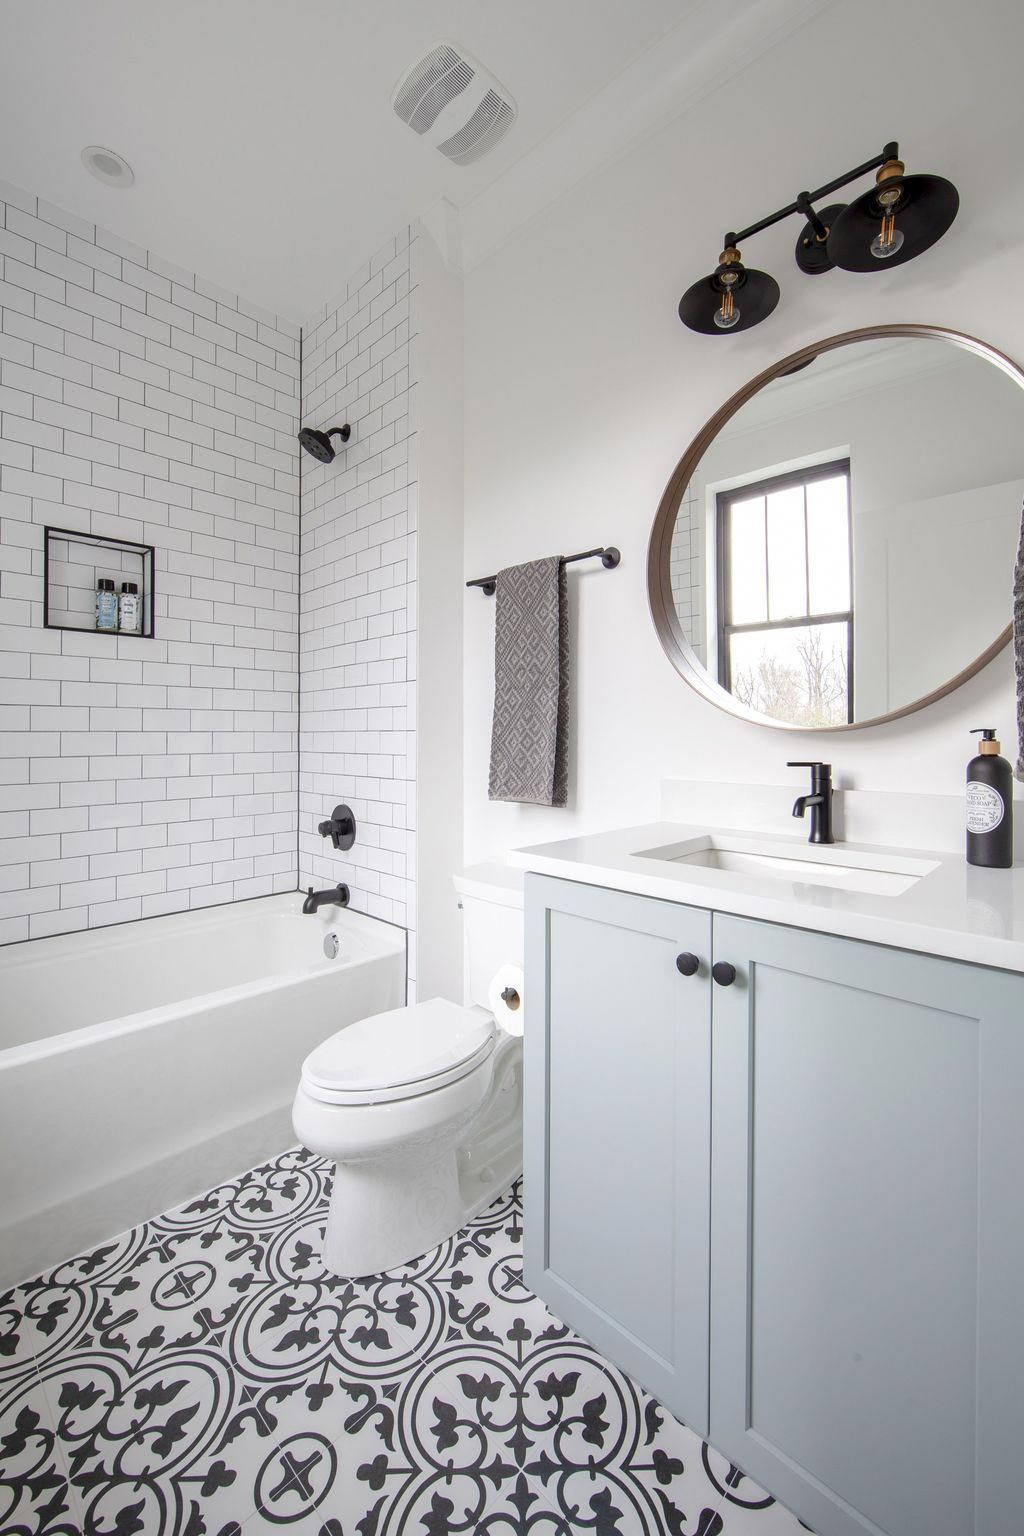 Beautiful Bathrooms Wallpaper Color Fittings Layout Design Of Bathrooms Lux In 2020 Farmhouse Bathroom Vanity Bathroom Lighting Design Modern Farmhouse Bathroom